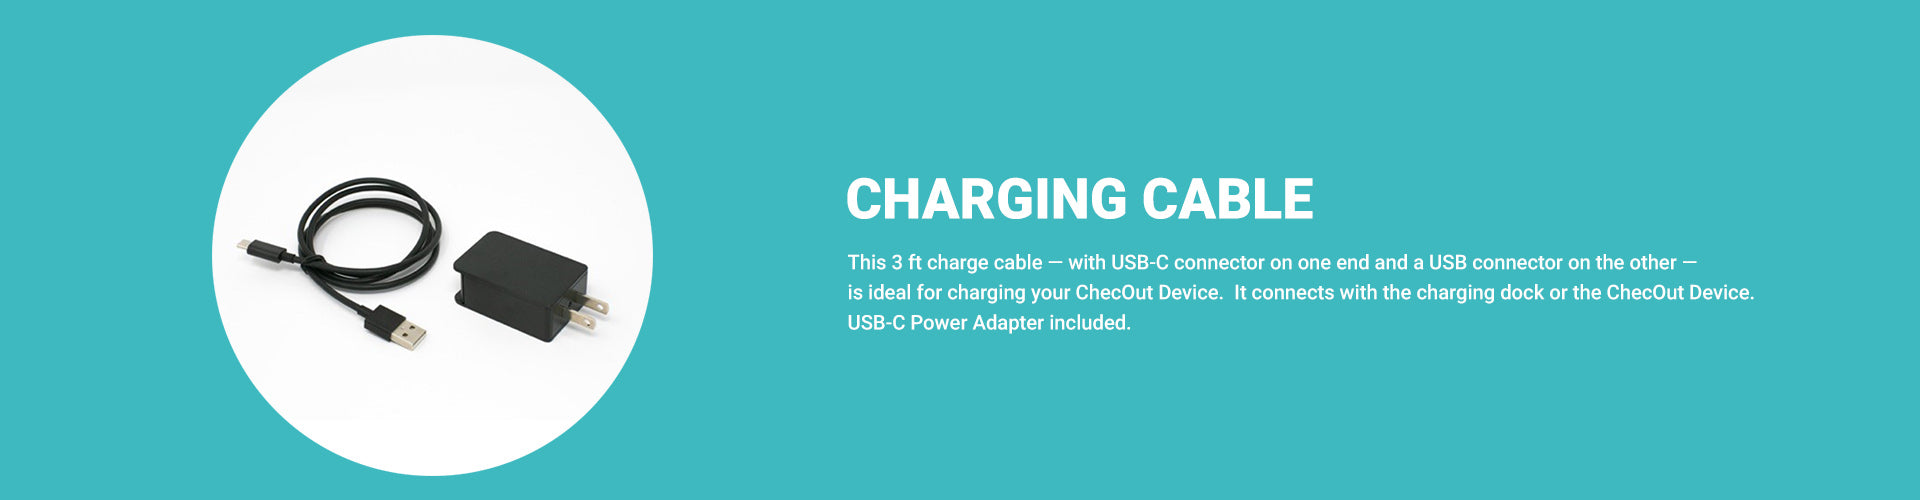 Charging Cable